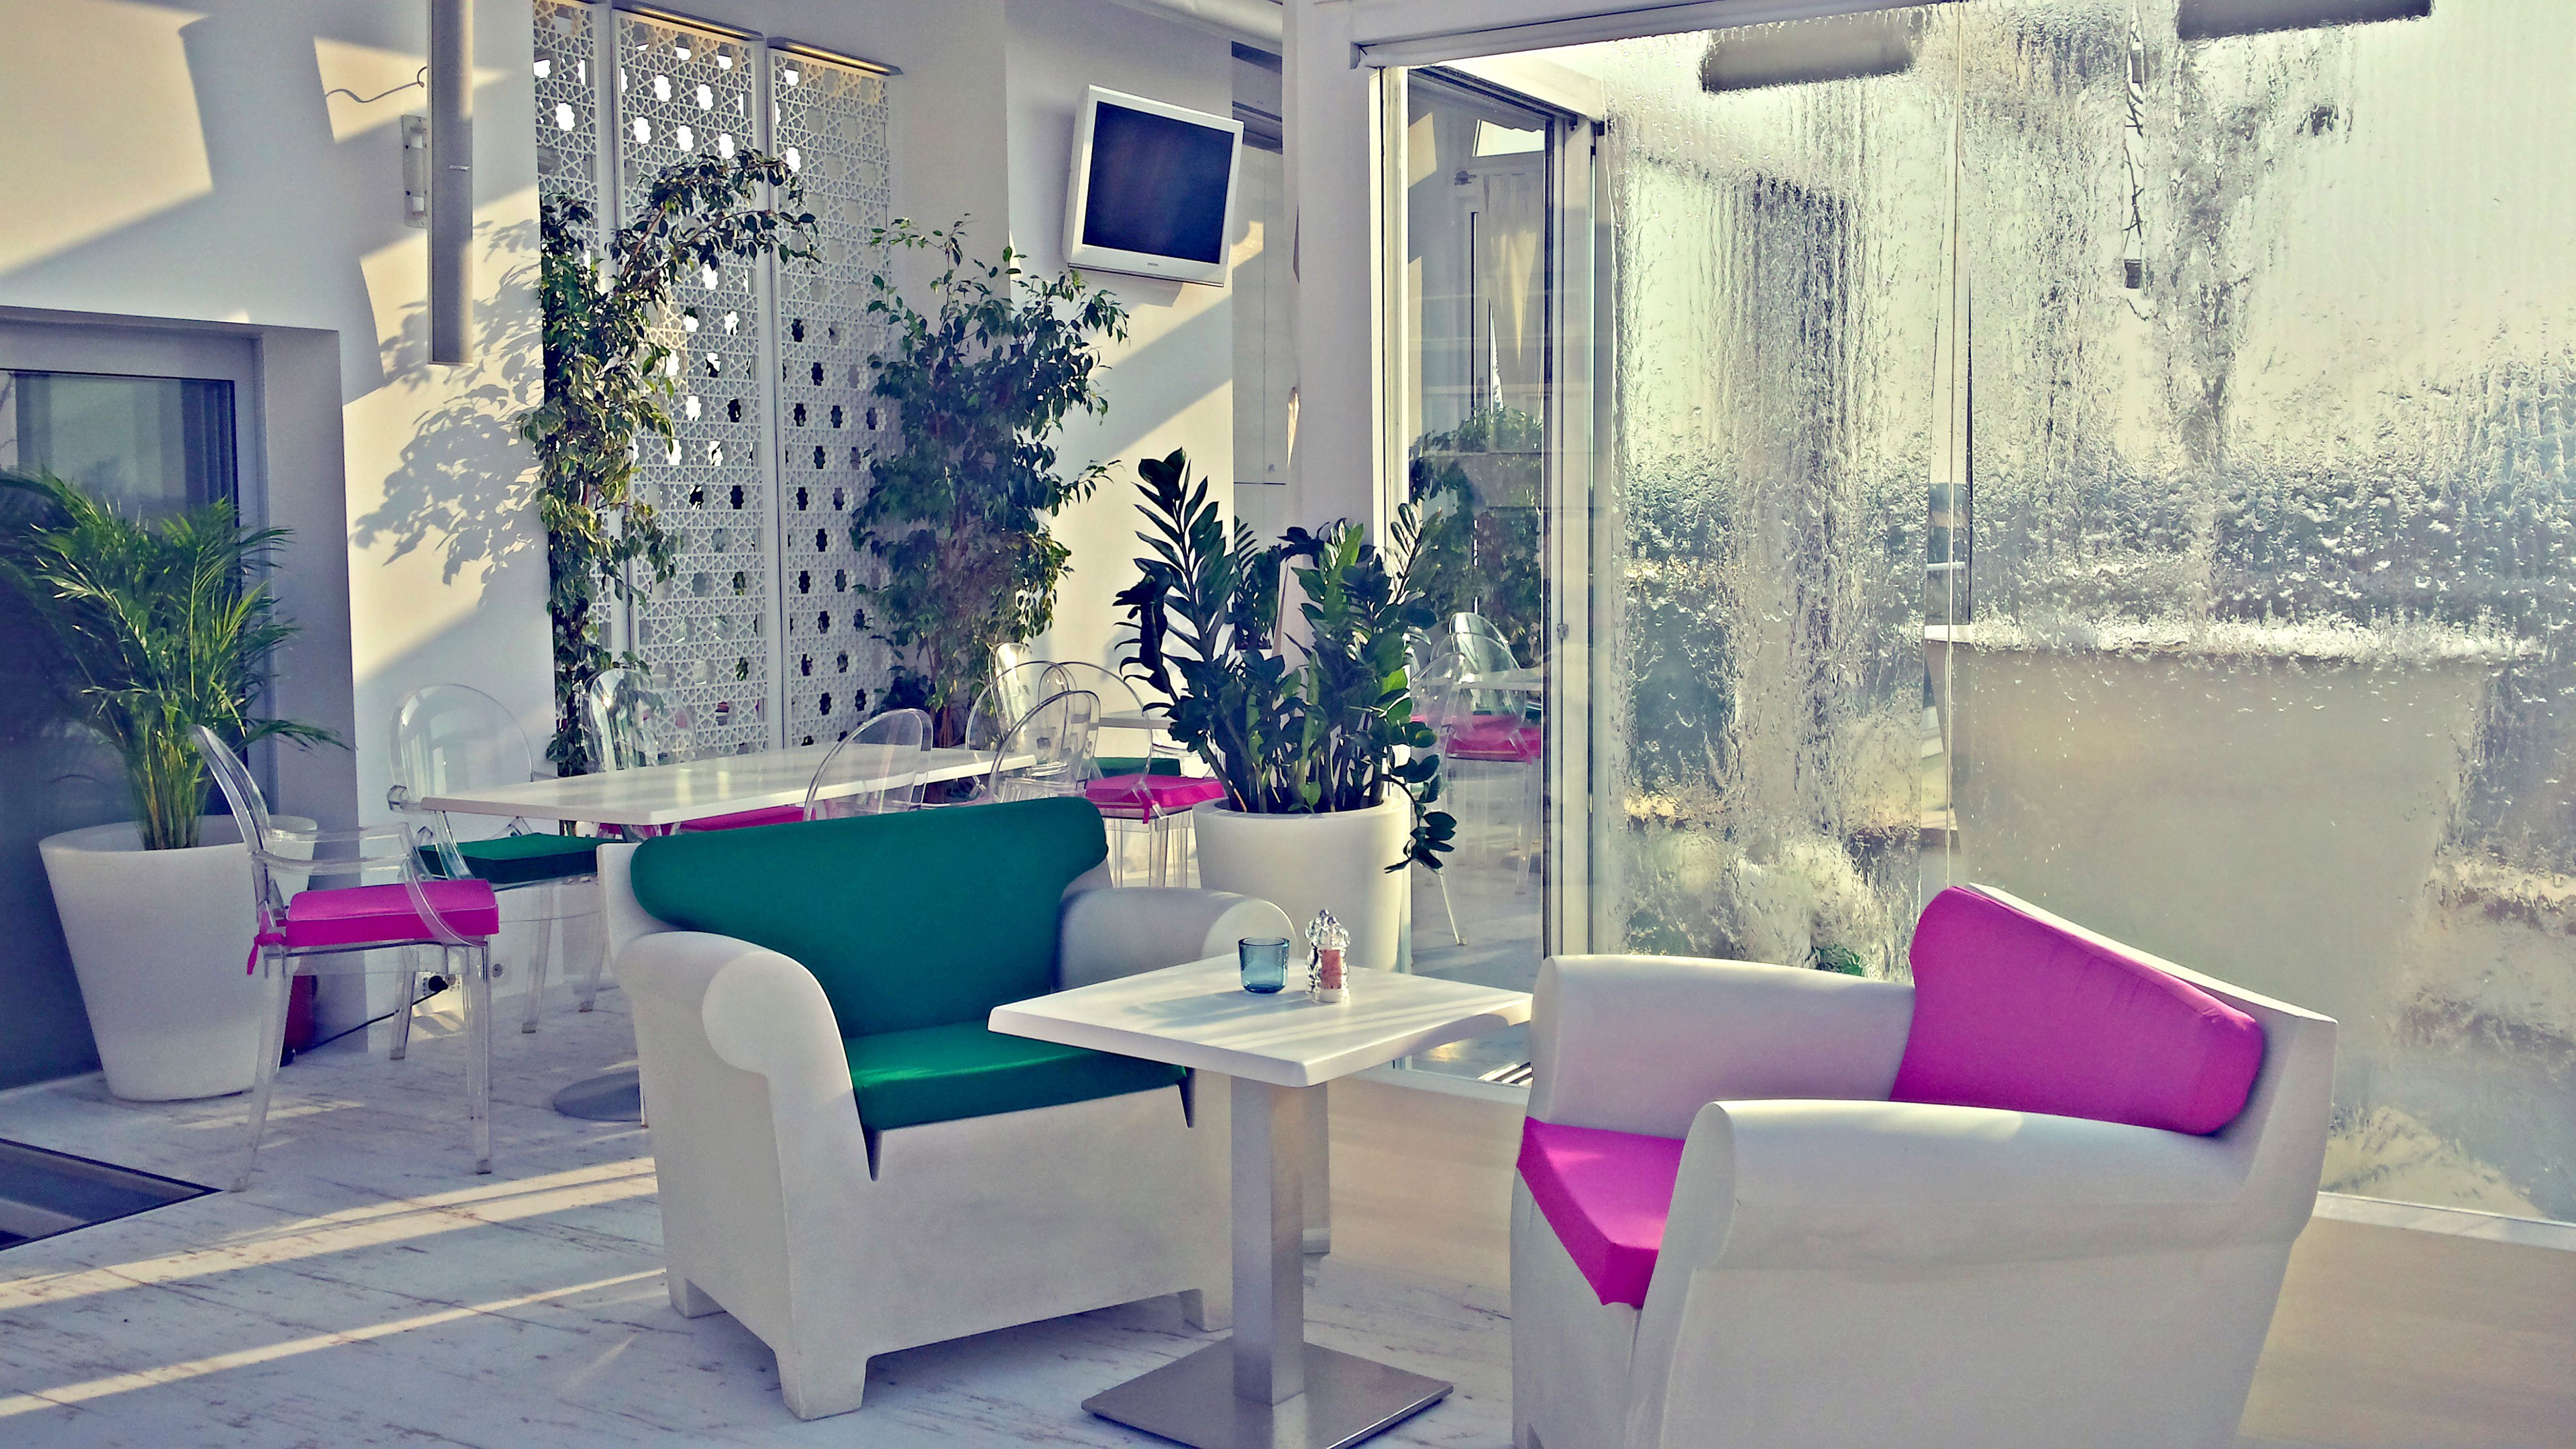 CR DESIGN - Design Interior Sky Bar Dorobanti